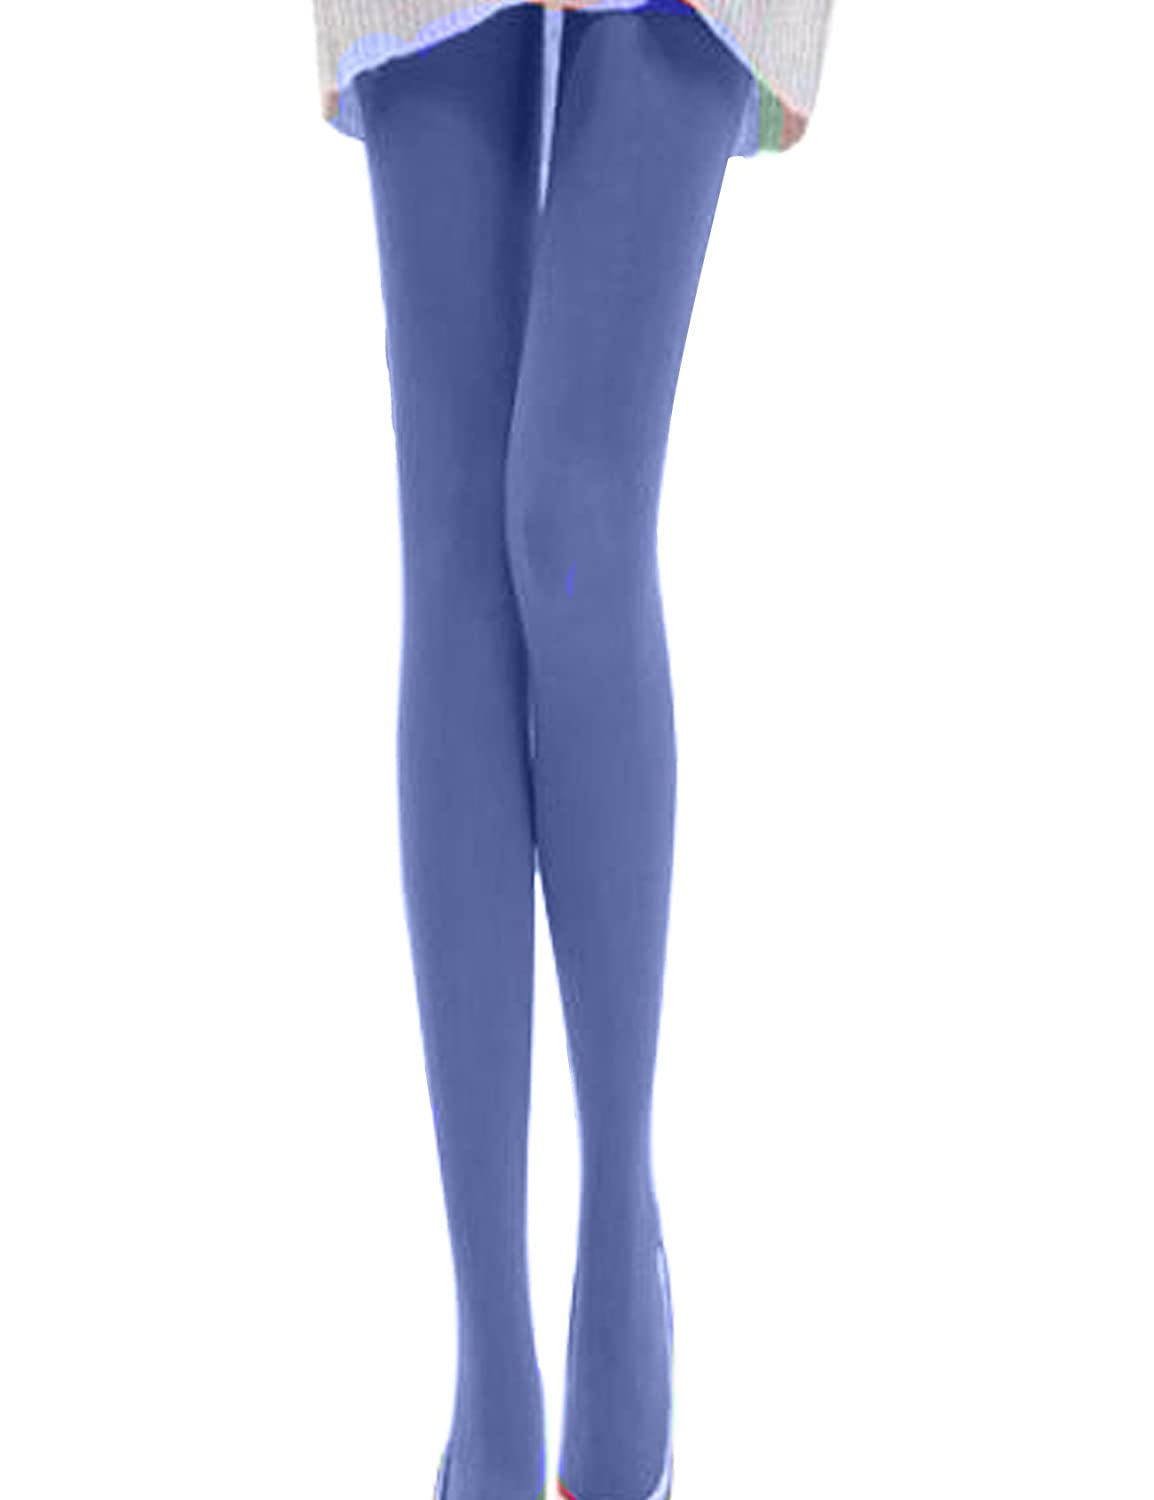 Bestgift Womens Fashion Candy Color Stretchy Leggings Tights Free Size Dark Blue BSGFBD0026-18